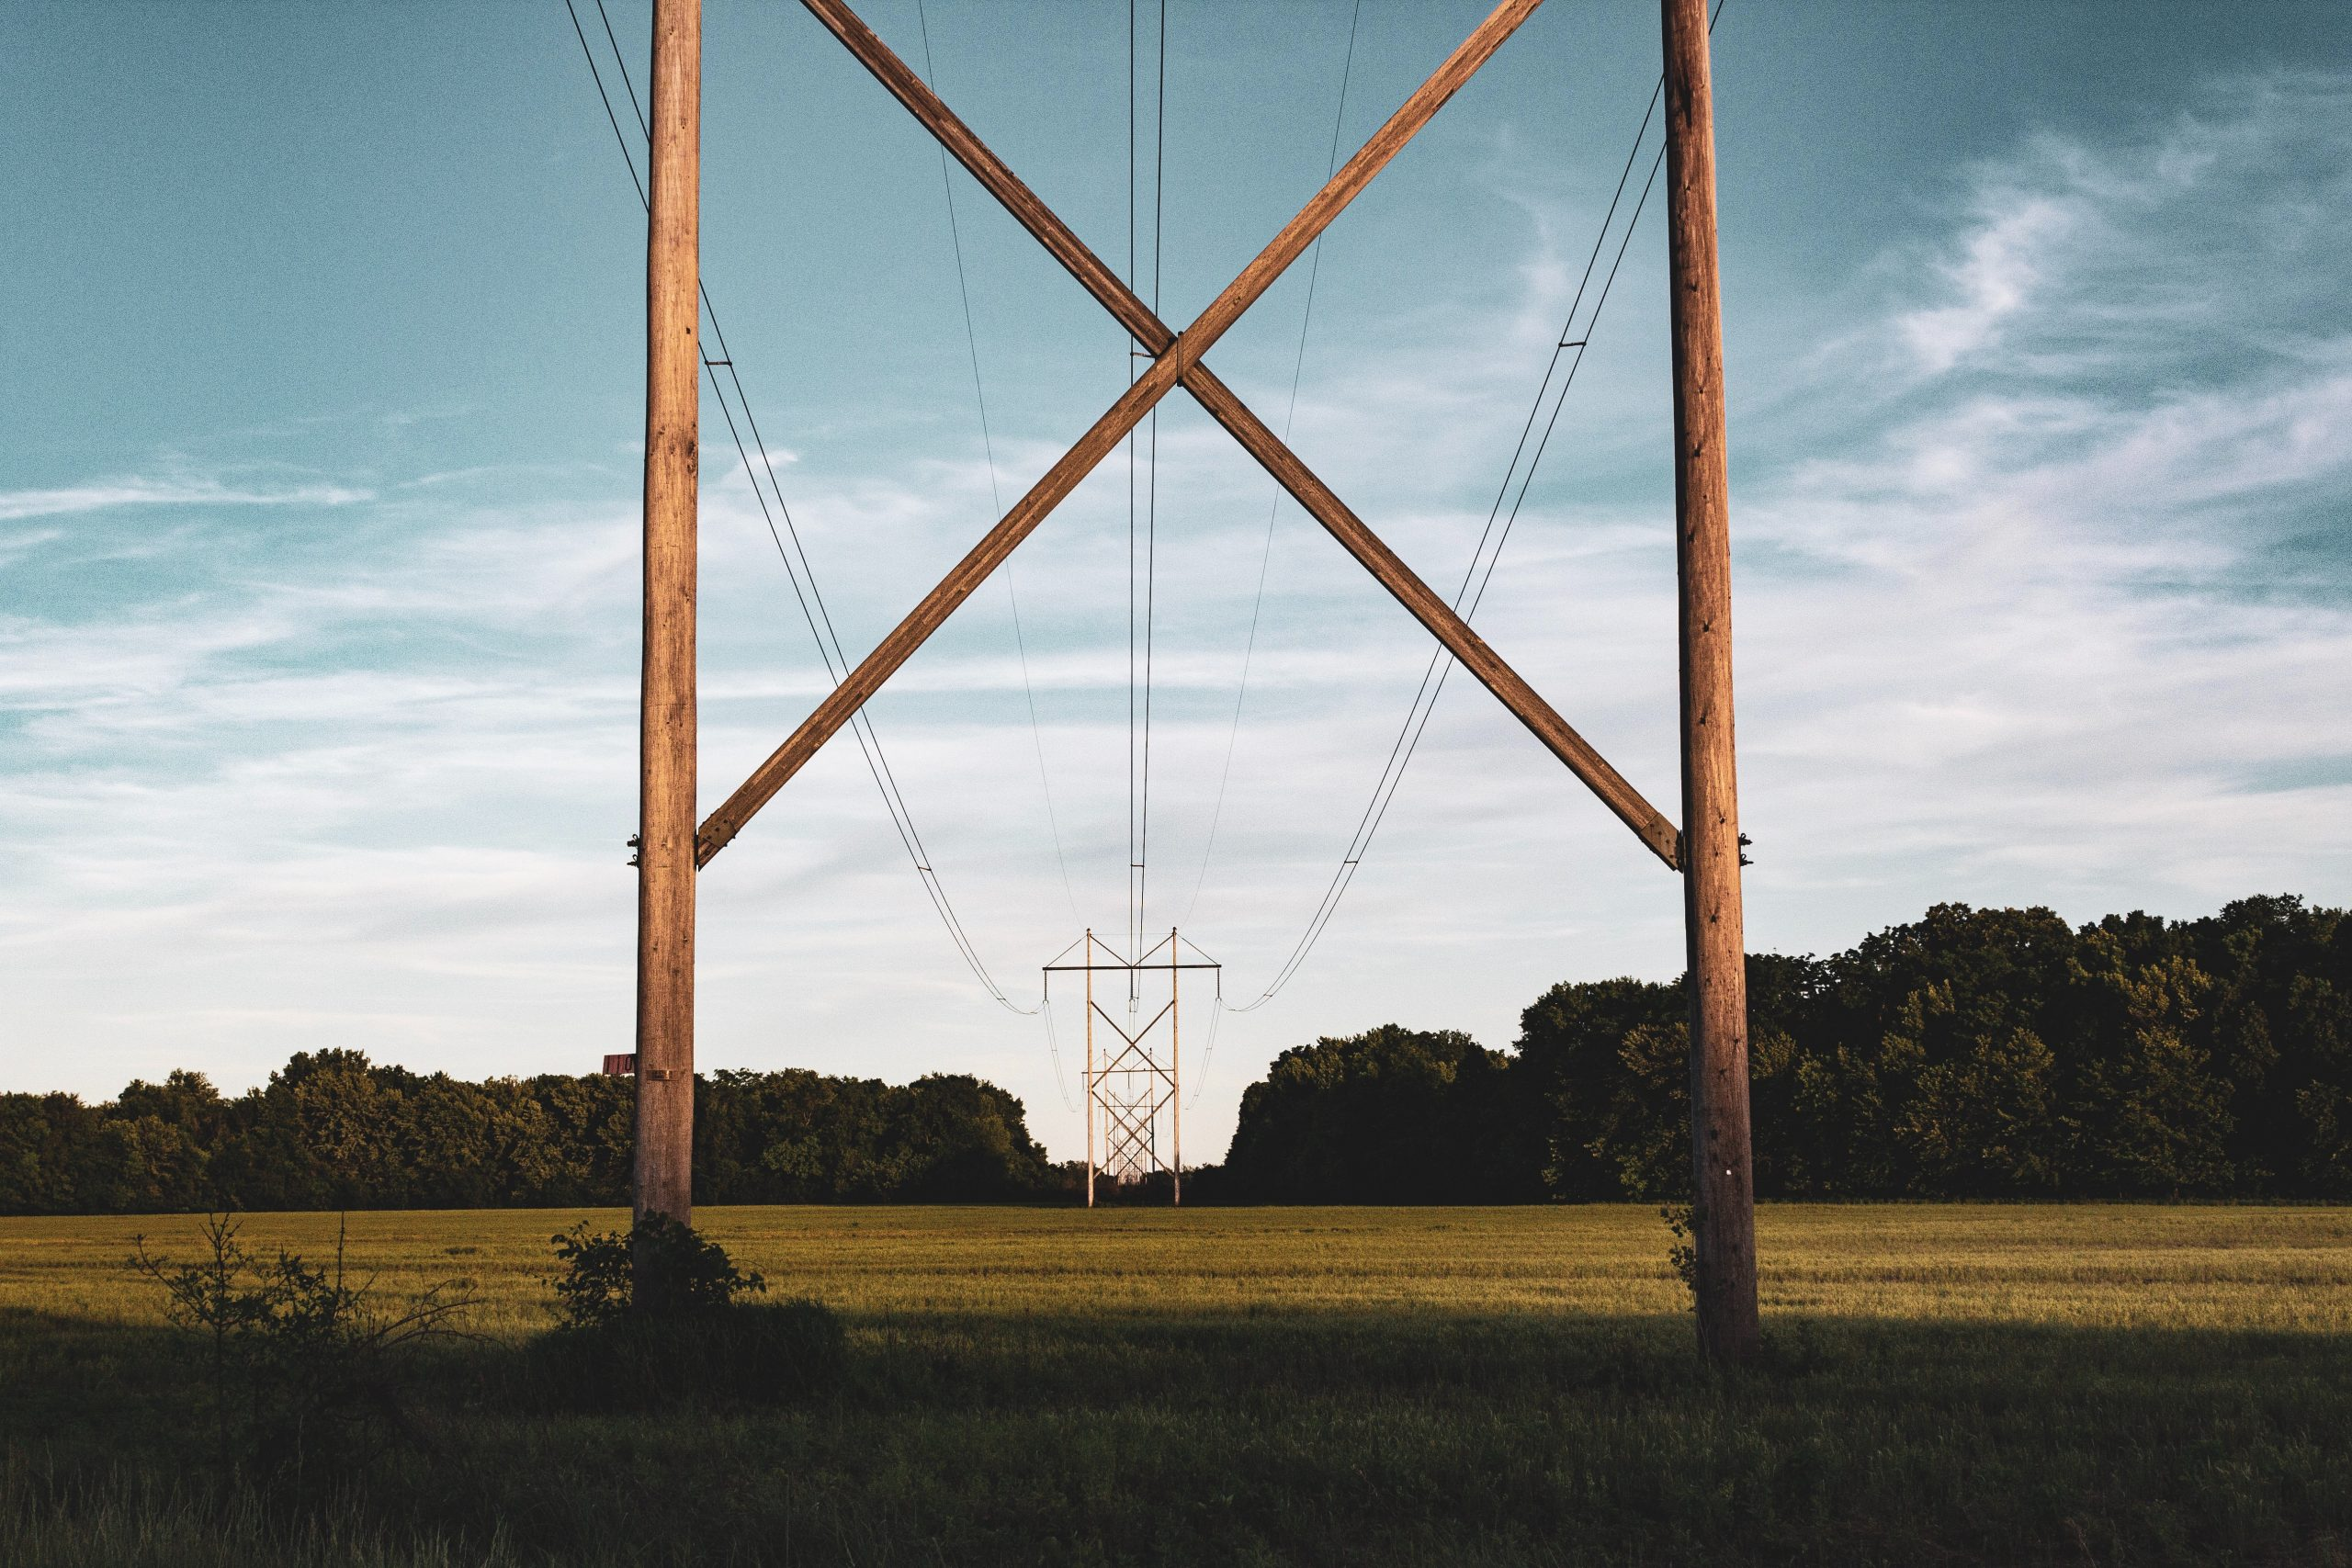 The Digital Divide and Rural Electrification